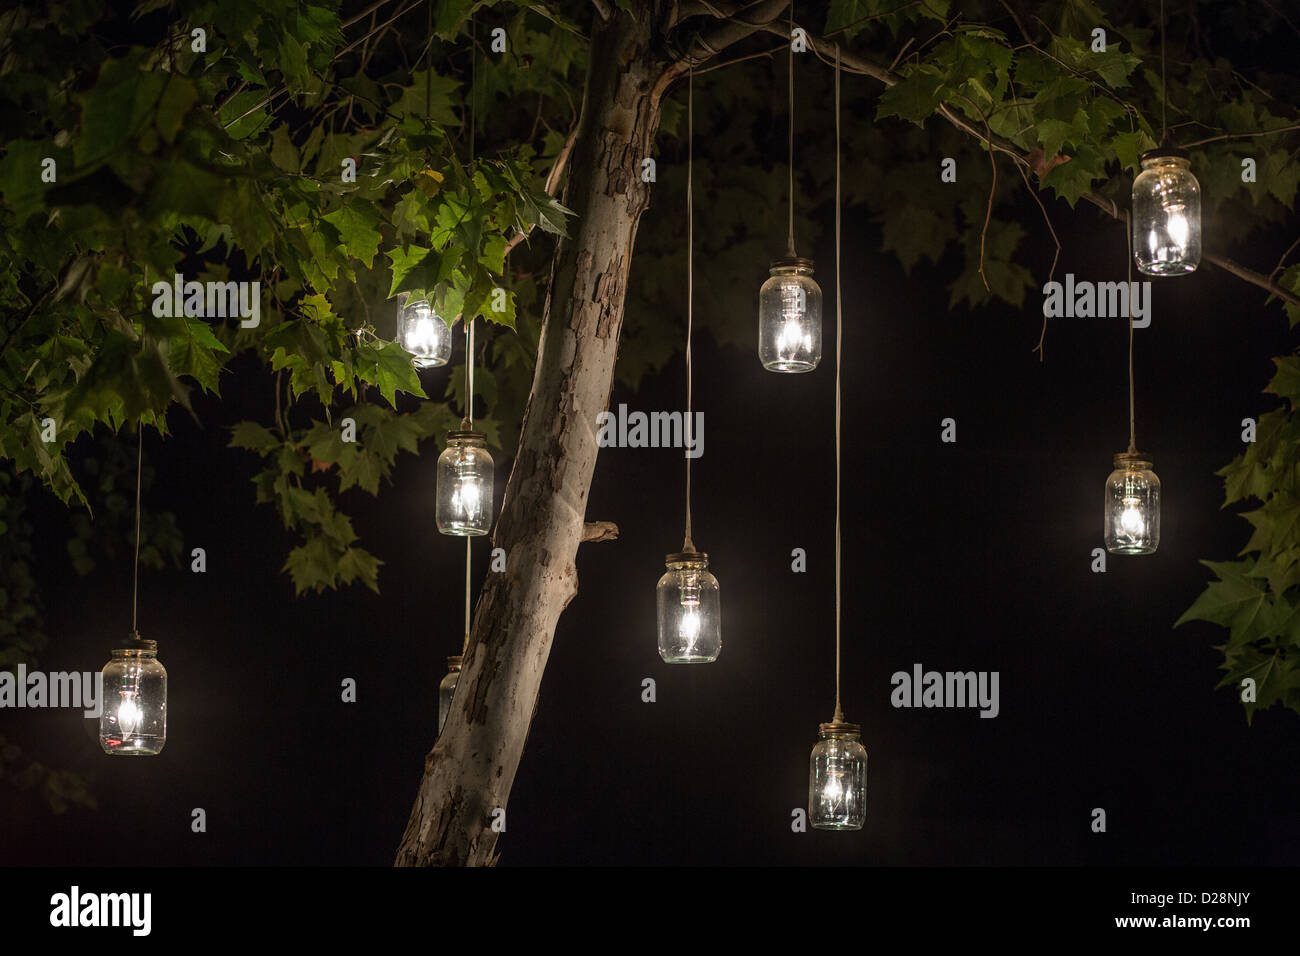 Hanging String Lights Without Trees : Glowing mason jar lights hanging from a tree Stock Photo, Royalty Free Image: 53053027 - Alamy